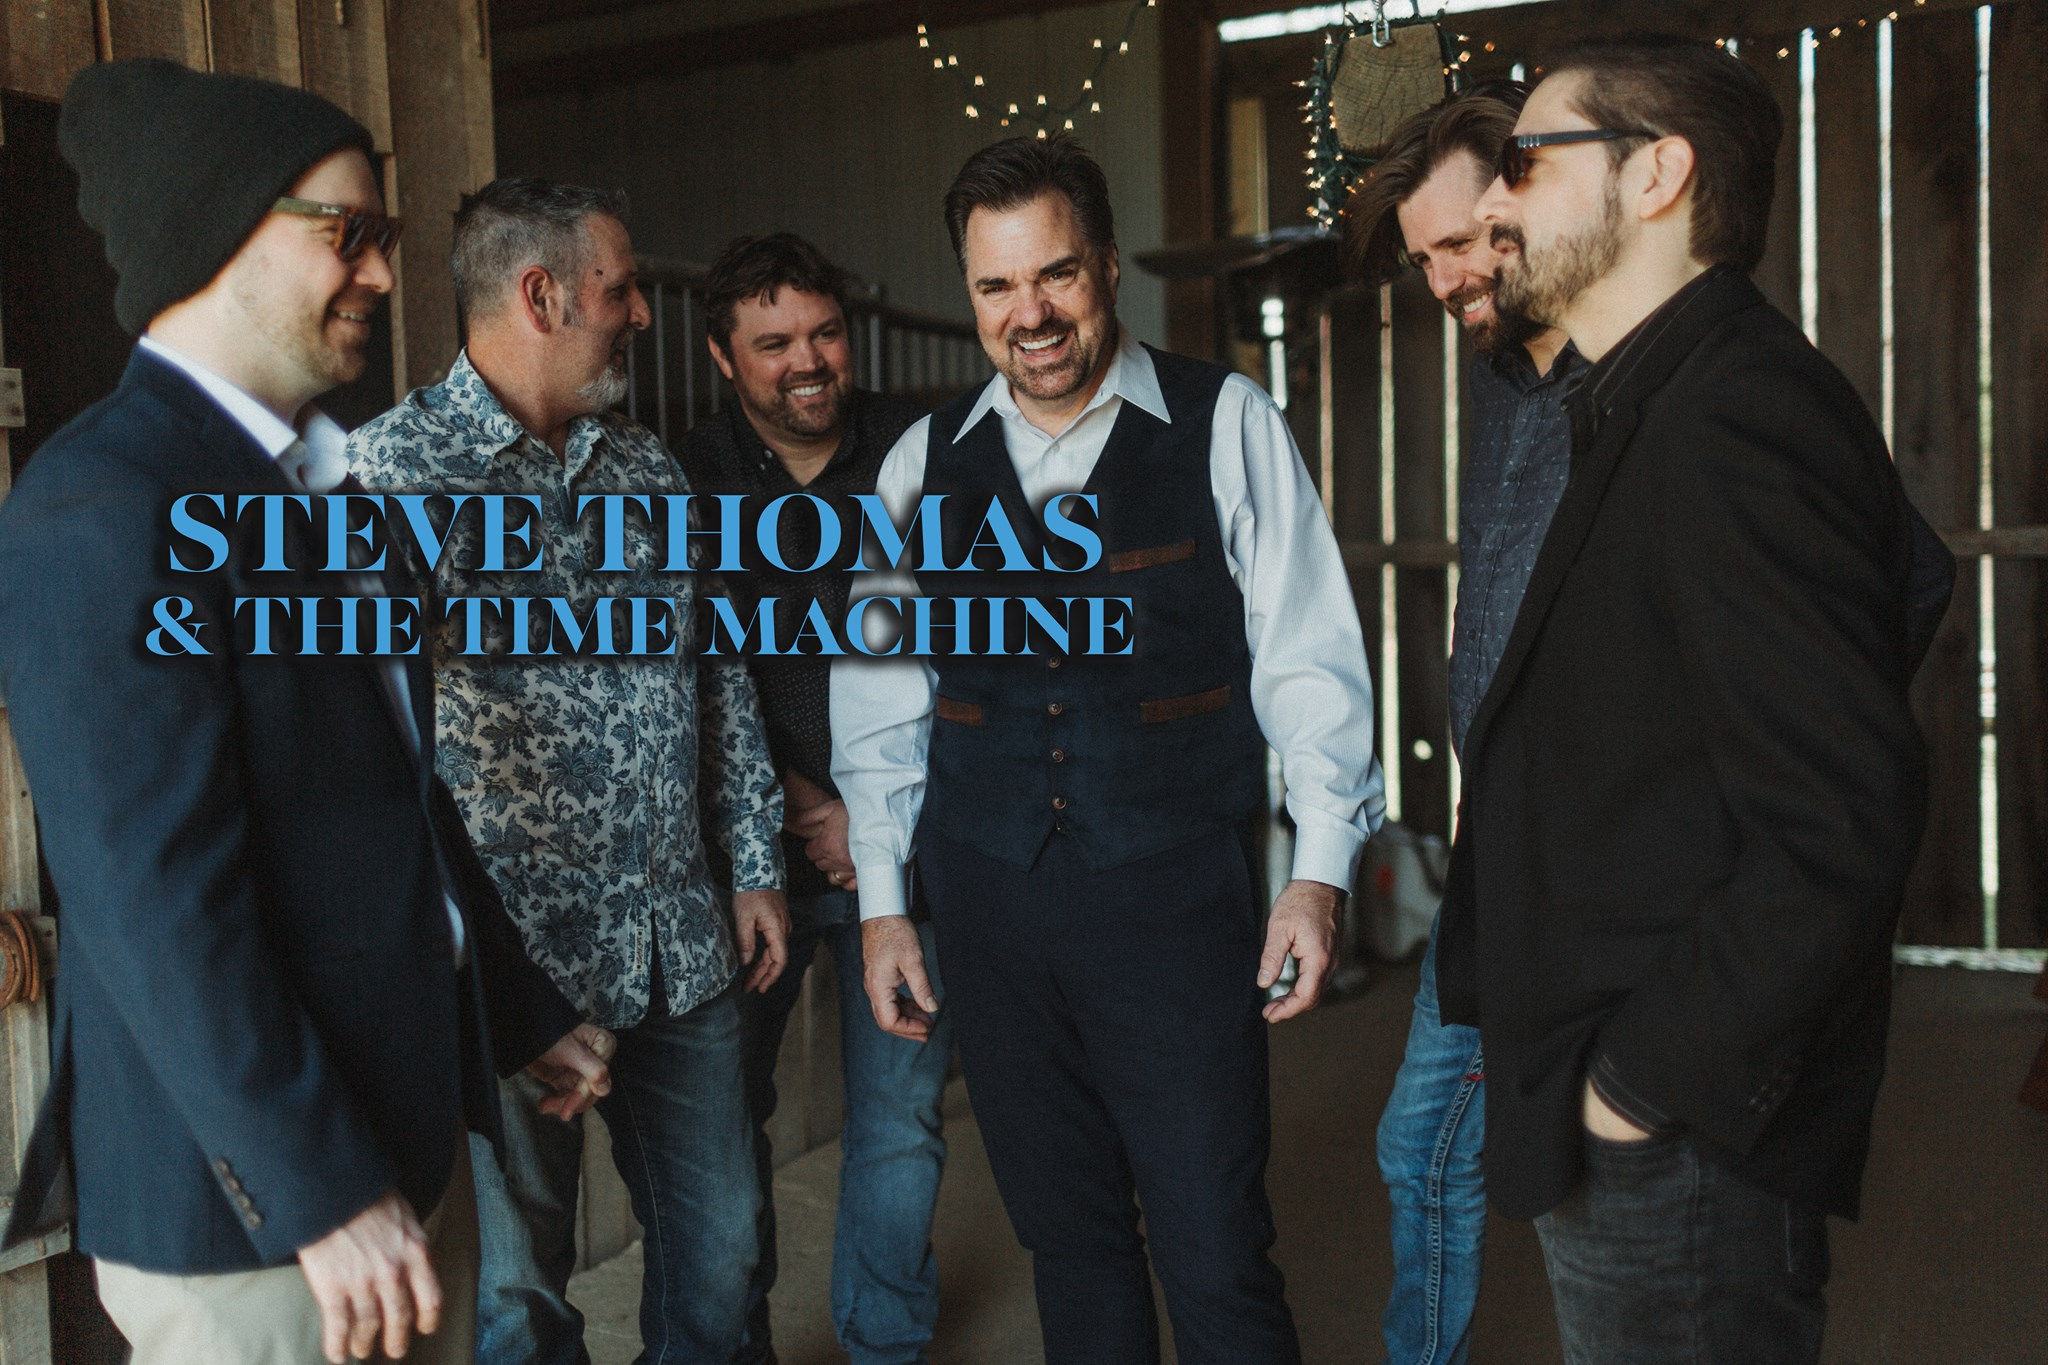 Steve Thomas and the Time Machine